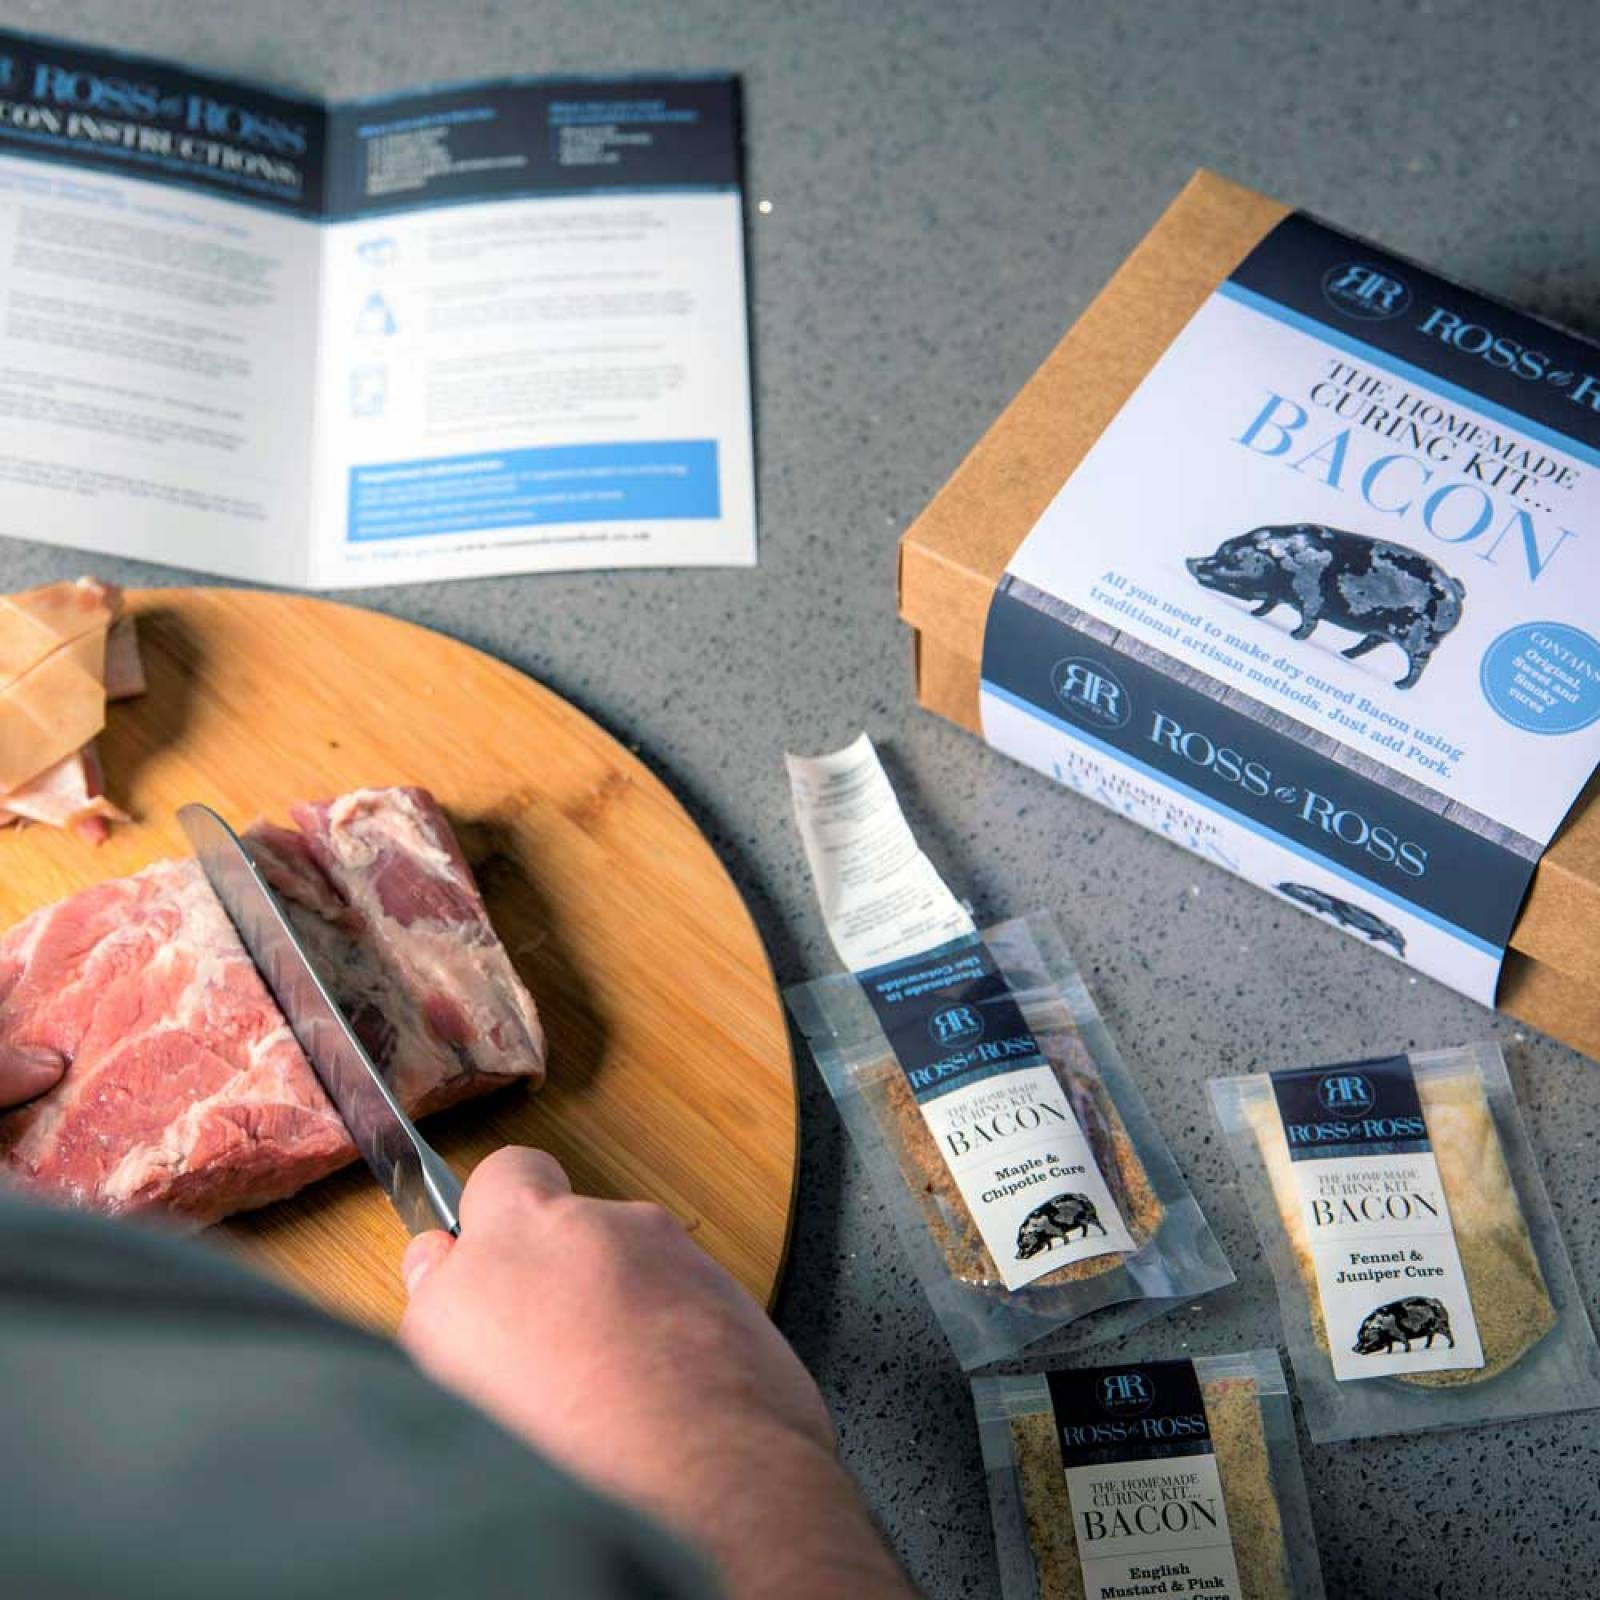 Cure Your Own Bacon Kit By Ross & Ross thumbnails